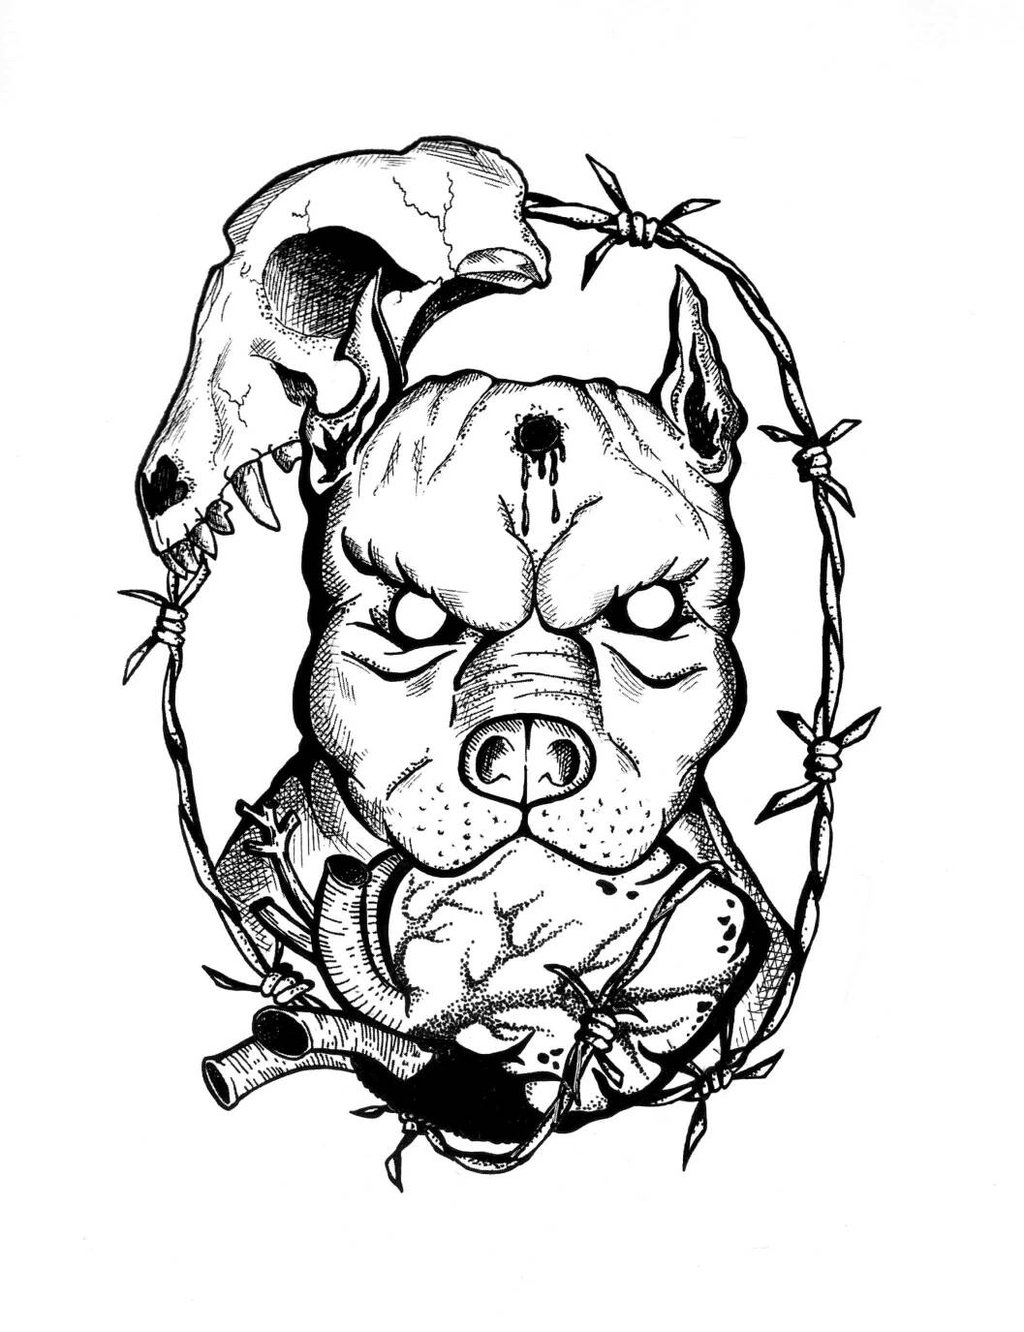 1024x1332 Pit Bull Tattoo Art Drawings Pictures To Pin